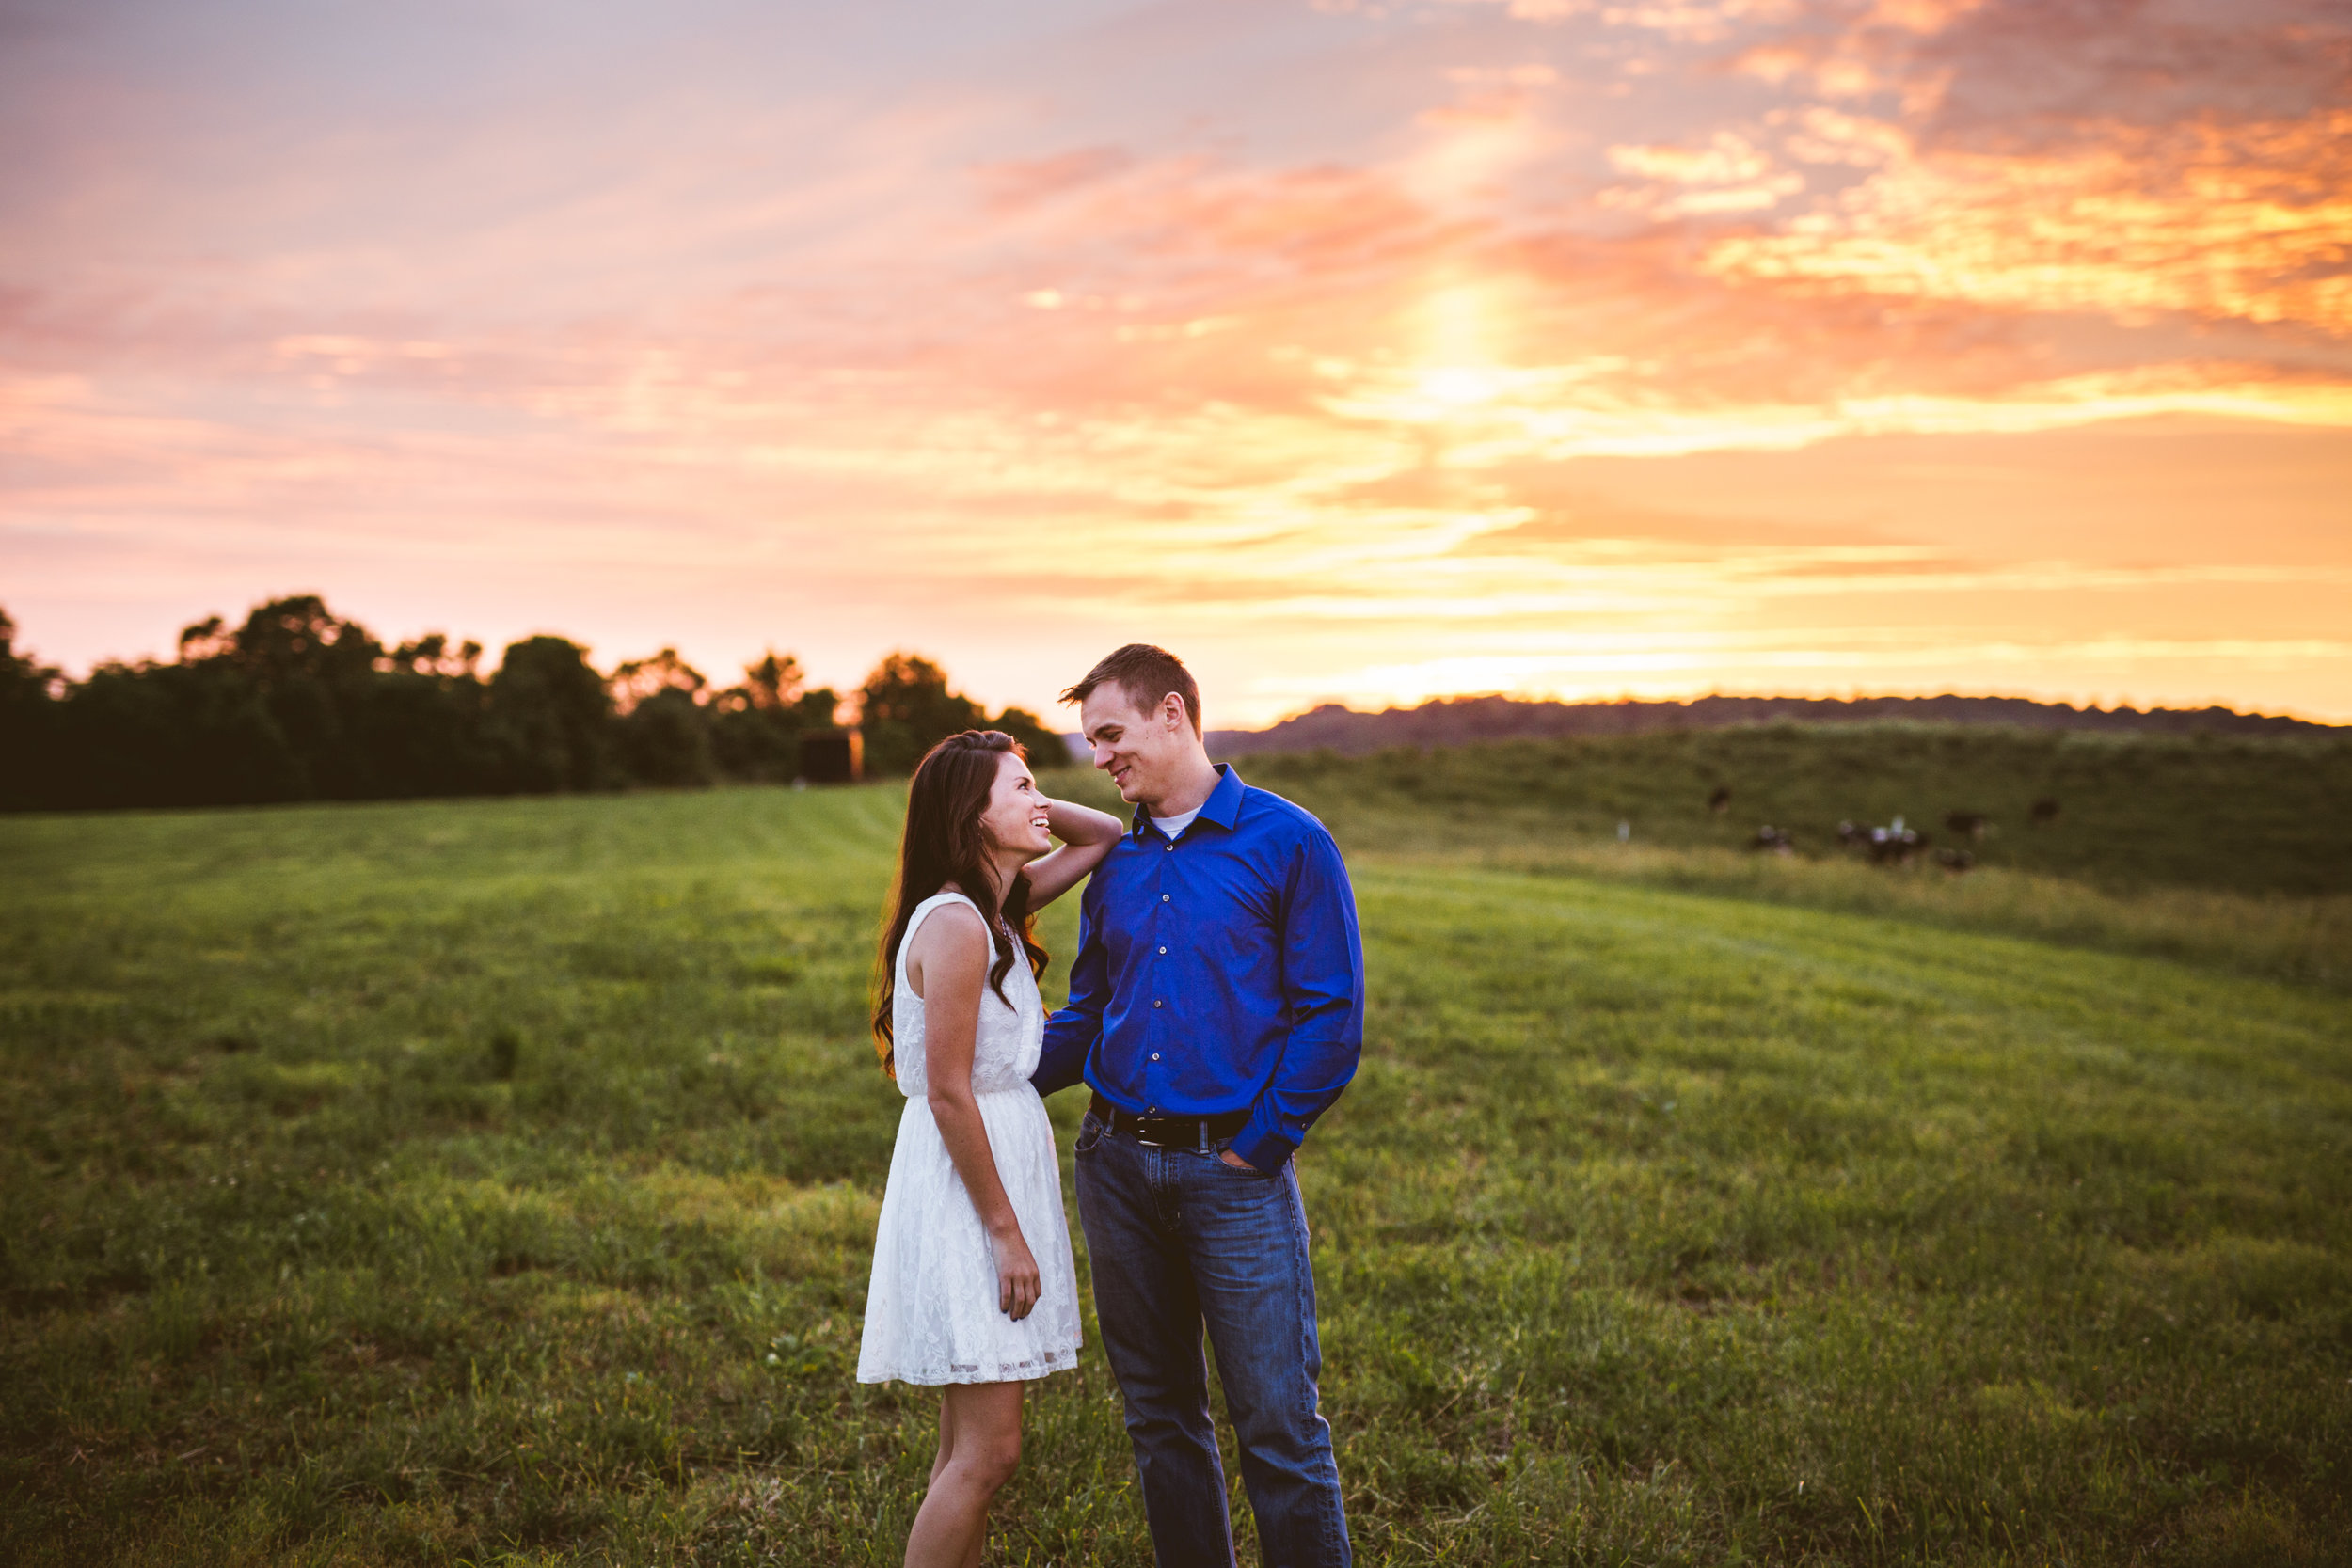 Todd-Hunt Engagement-97.jpg